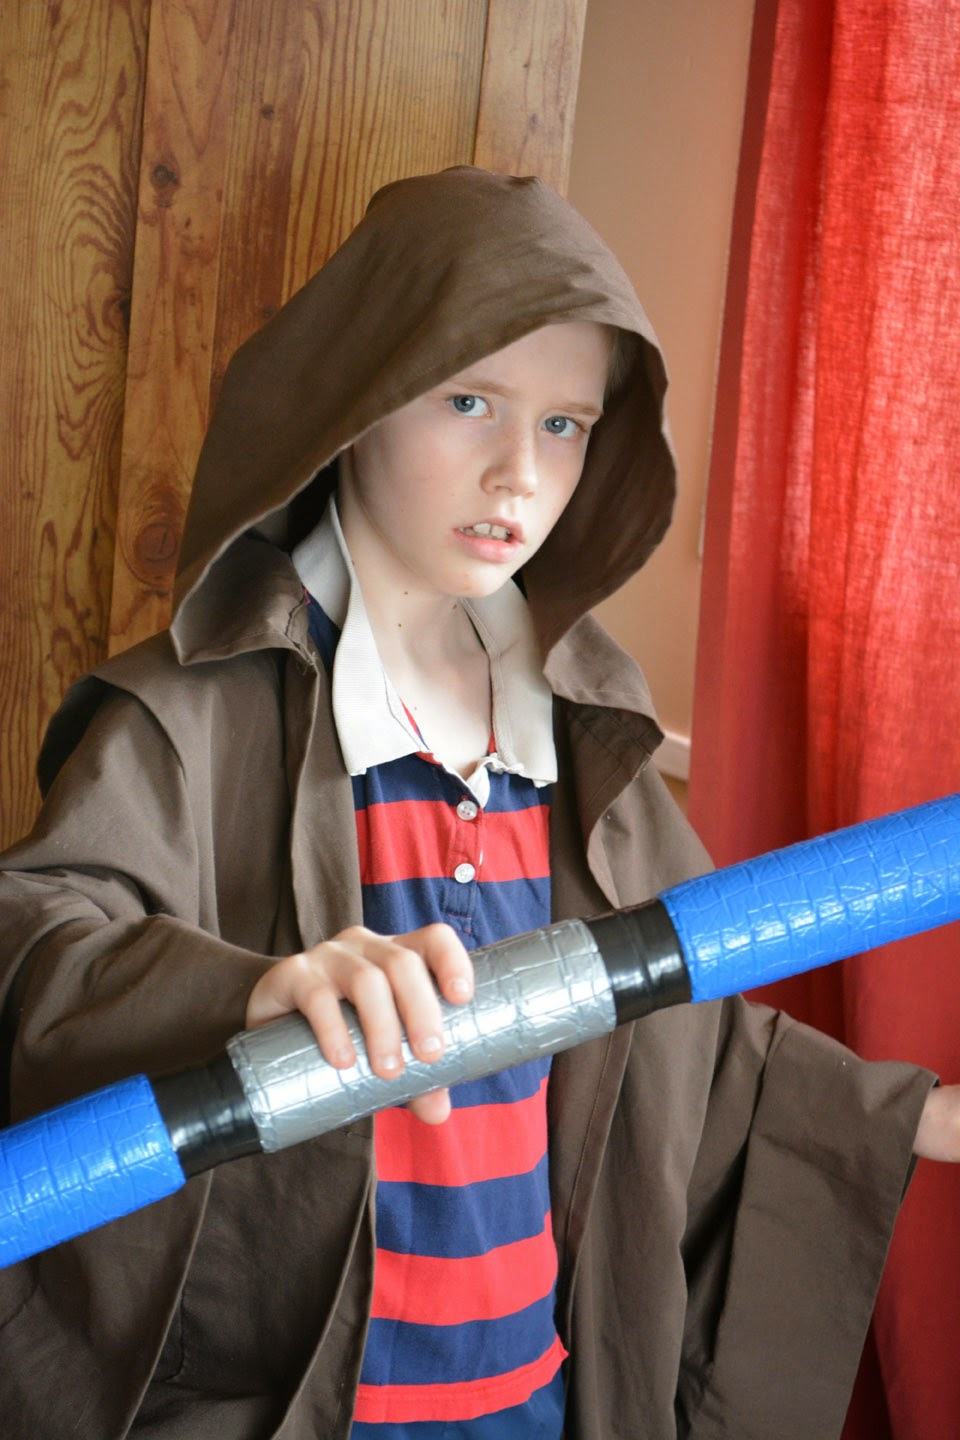 Jedi boy with light sabre